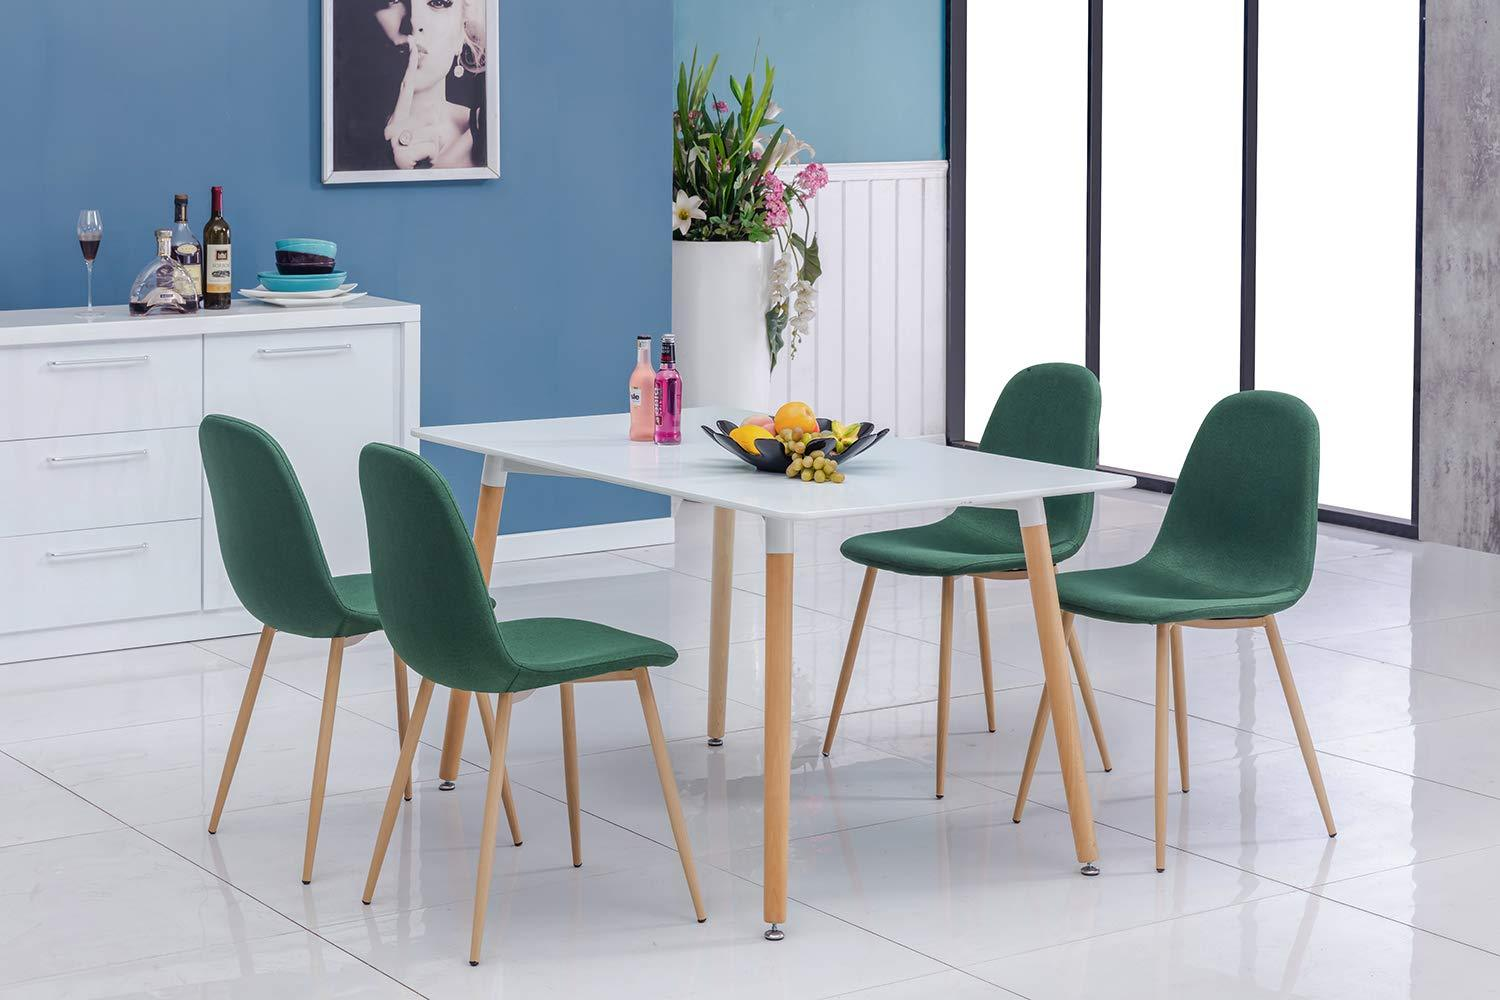 Green Velvet Luxe Revival Gold Wooden Legs Modern Art Deco Dining Chairs 4pc - Pebble & Leaf Home